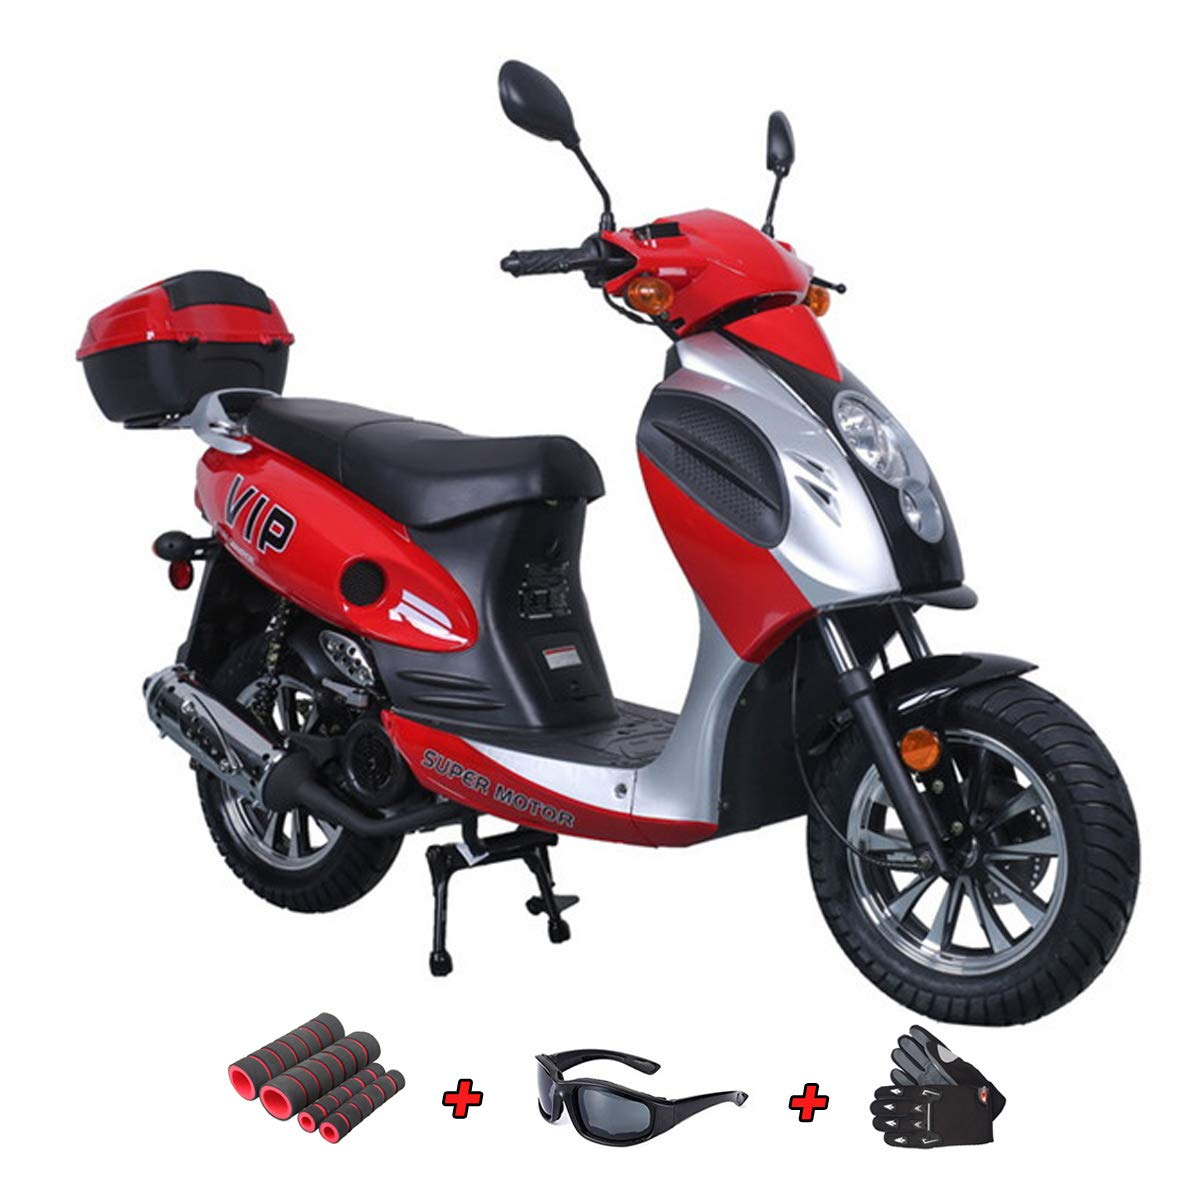 150cc Moped Scooter Motorcycle Scooter 150 Adult Scooter Gas Moped Scooter with Gloves, Sunglasses and Handgrip (Blue) by X-Pro